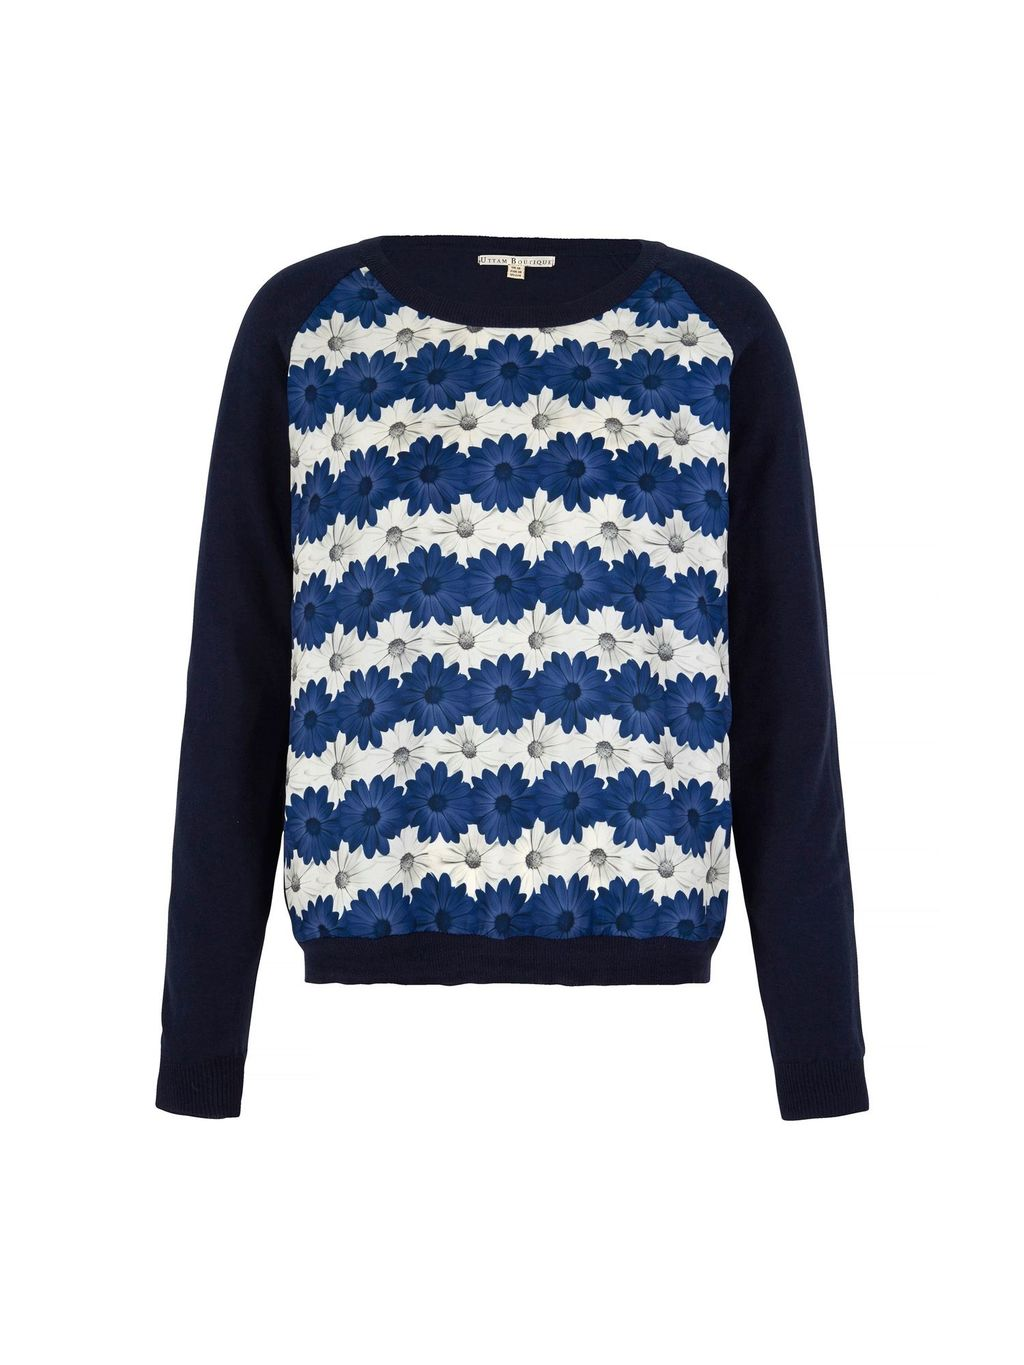 Daisy Stripe Print Jumper, Blue - style: standard; secondary colour: white; predominant colour: royal blue; occasions: casual, creative work; length: standard; fibres: cotton - 100%; fit: standard fit; neckline: crew; sleeve length: long sleeve; sleeve style: standard; texture group: knits/crochet; pattern type: knitted - fine stitch; pattern size: standard; pattern: florals; multicoloured: multicoloured; season: s/s 2016; wardrobe: highlight